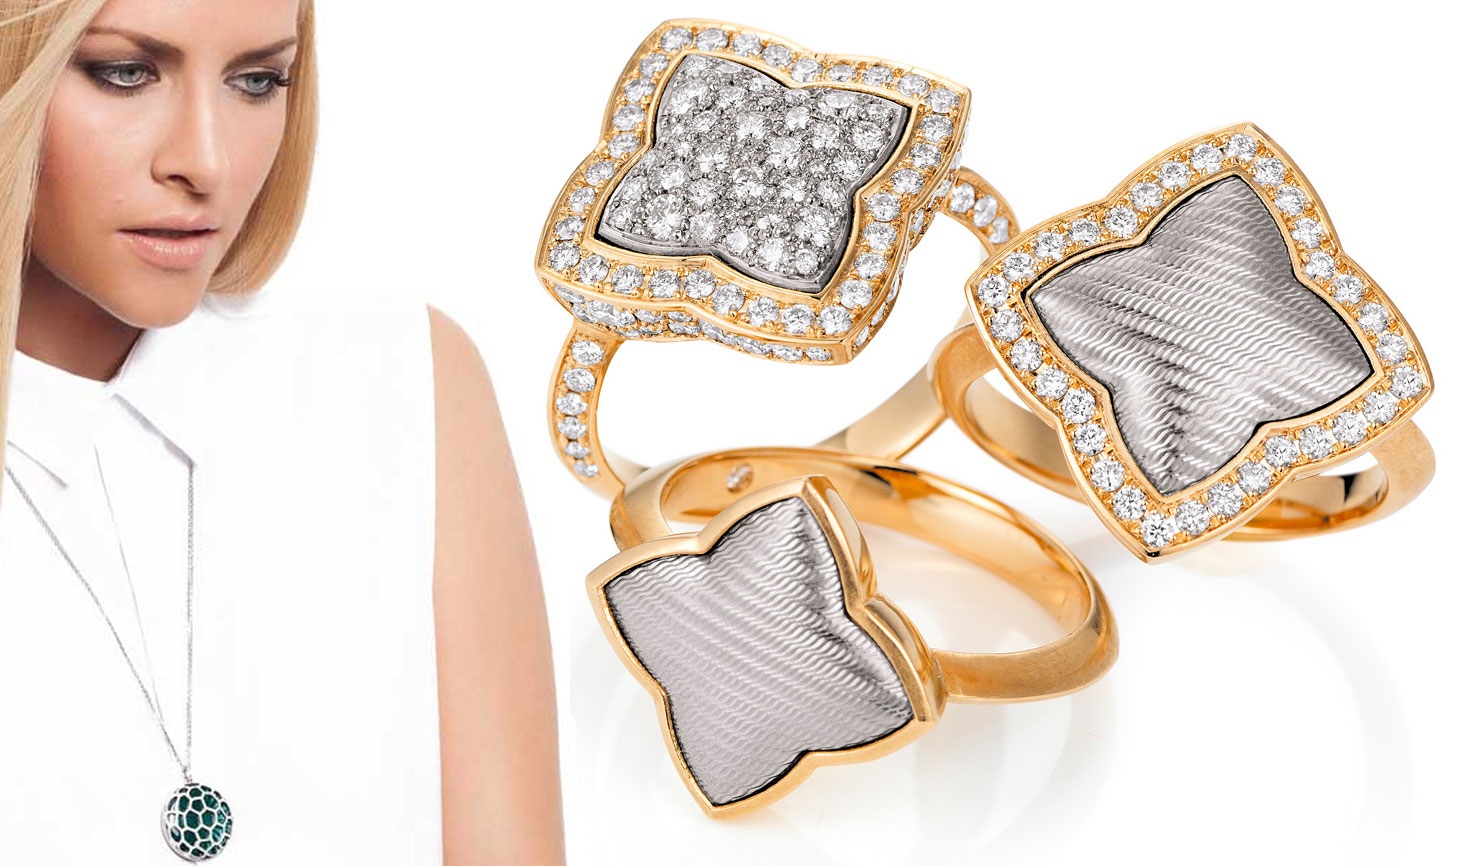 The Eloise Fine Jewellery Collection from Victor Mayer